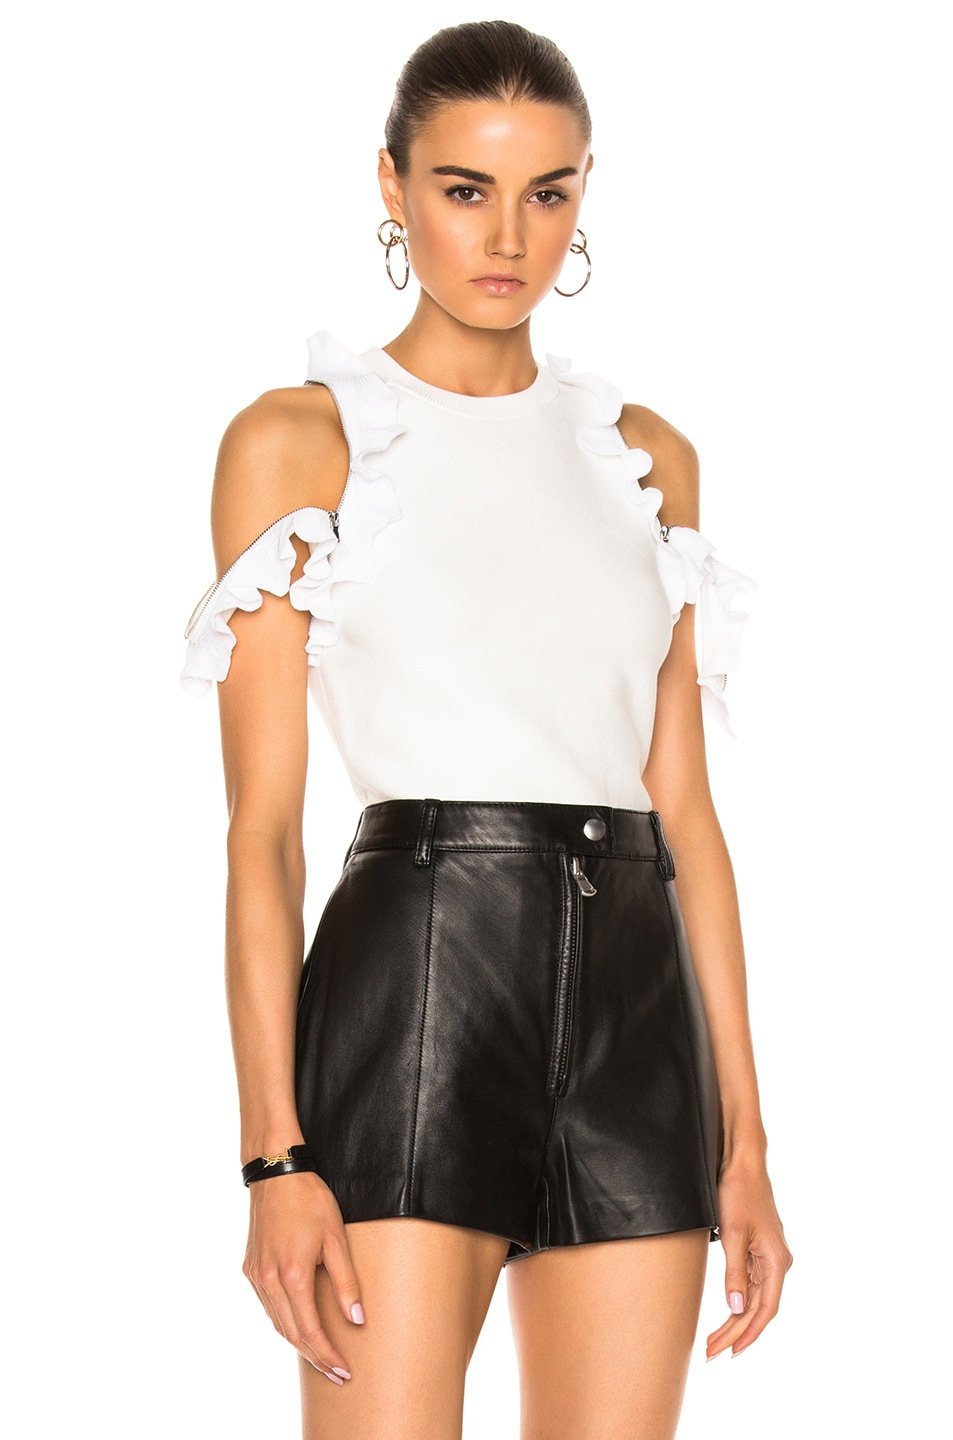 Image 1 of 3.1 phillip lim Ruffle Sport Tank with Zippers in White